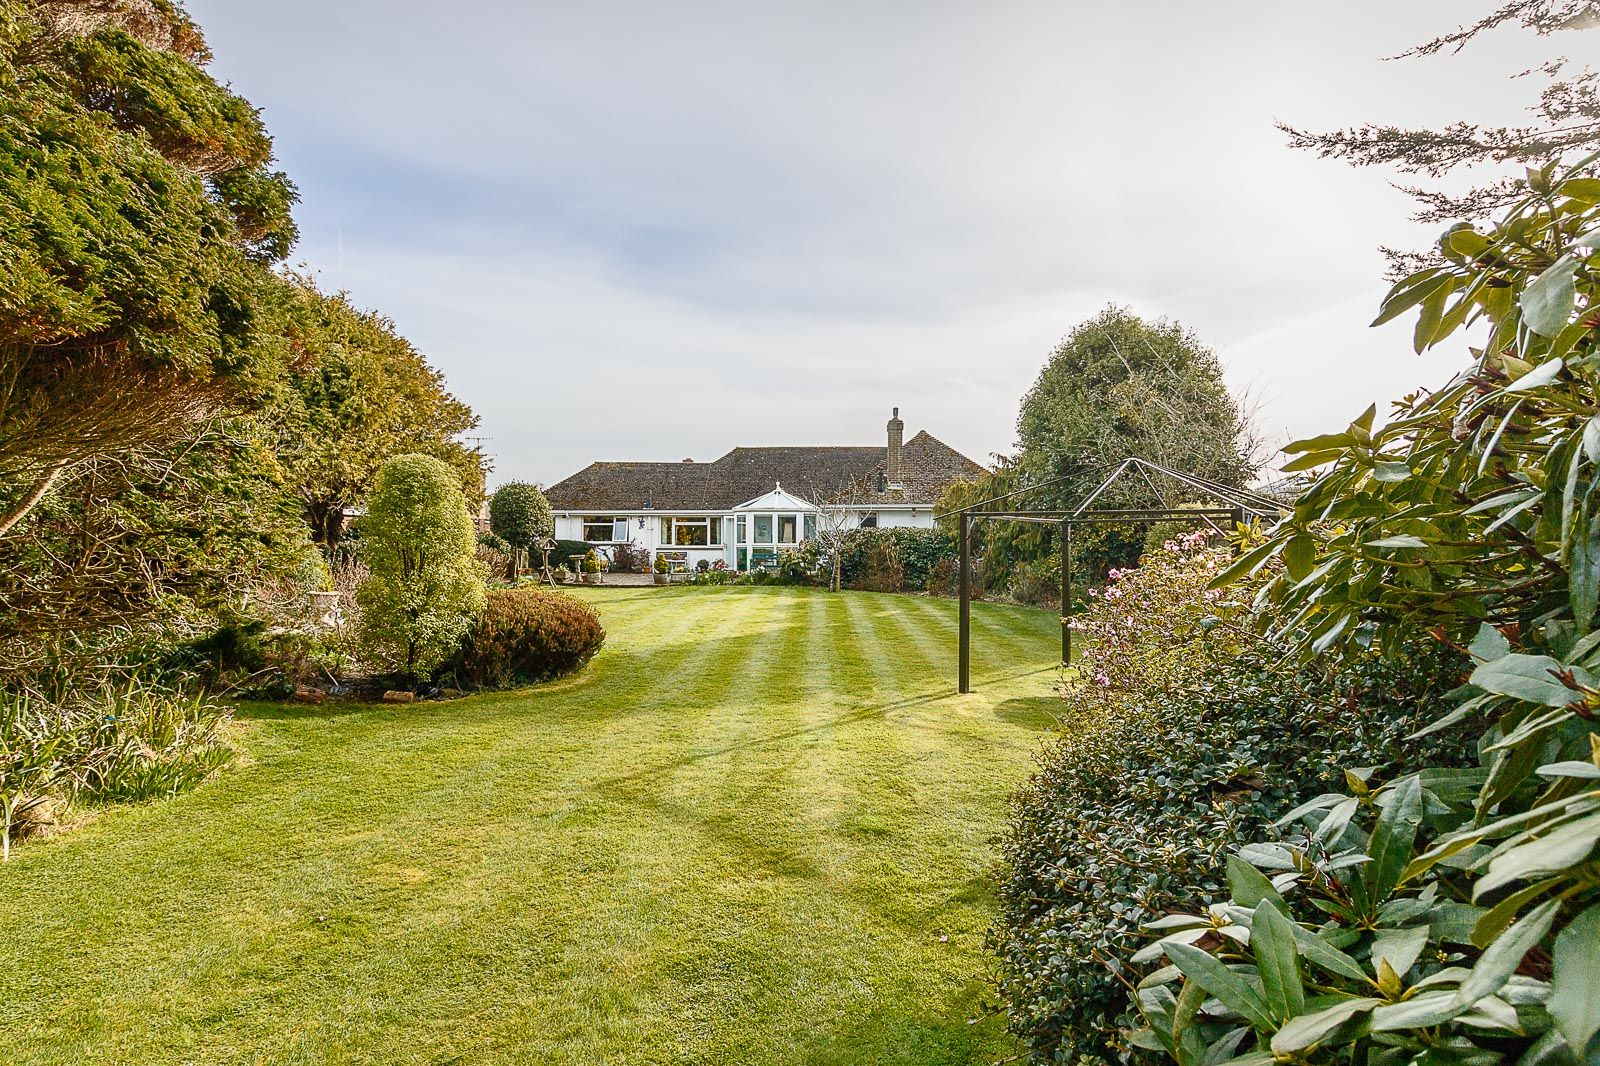 3 bed Bungalow for sale in East Preston - Rear view (Property Image 12)